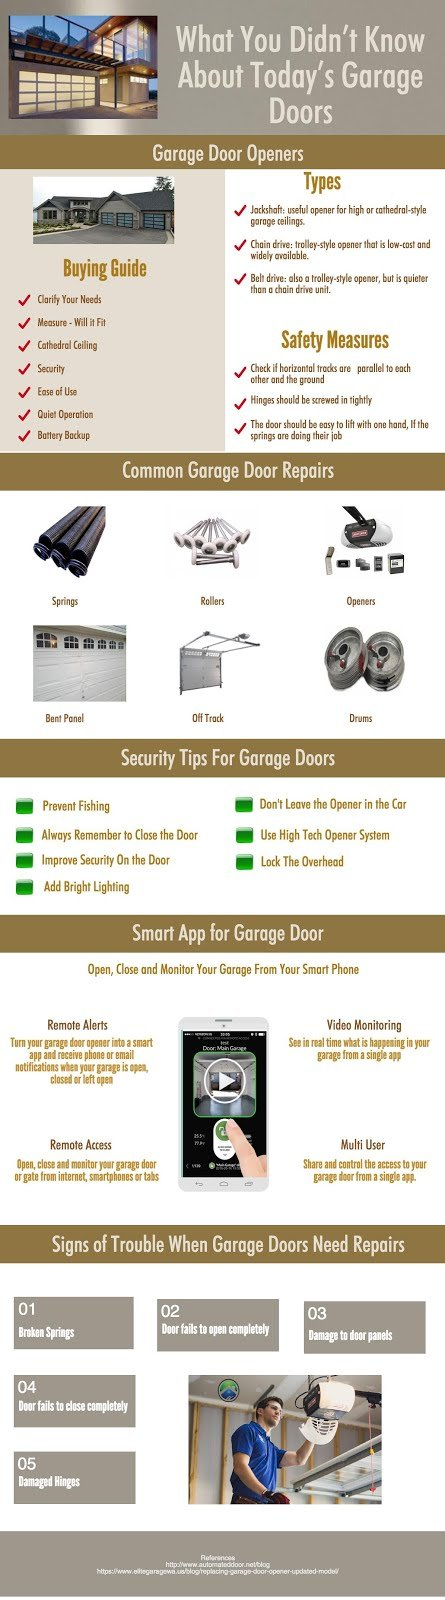 What you didn't know about today's garage doors